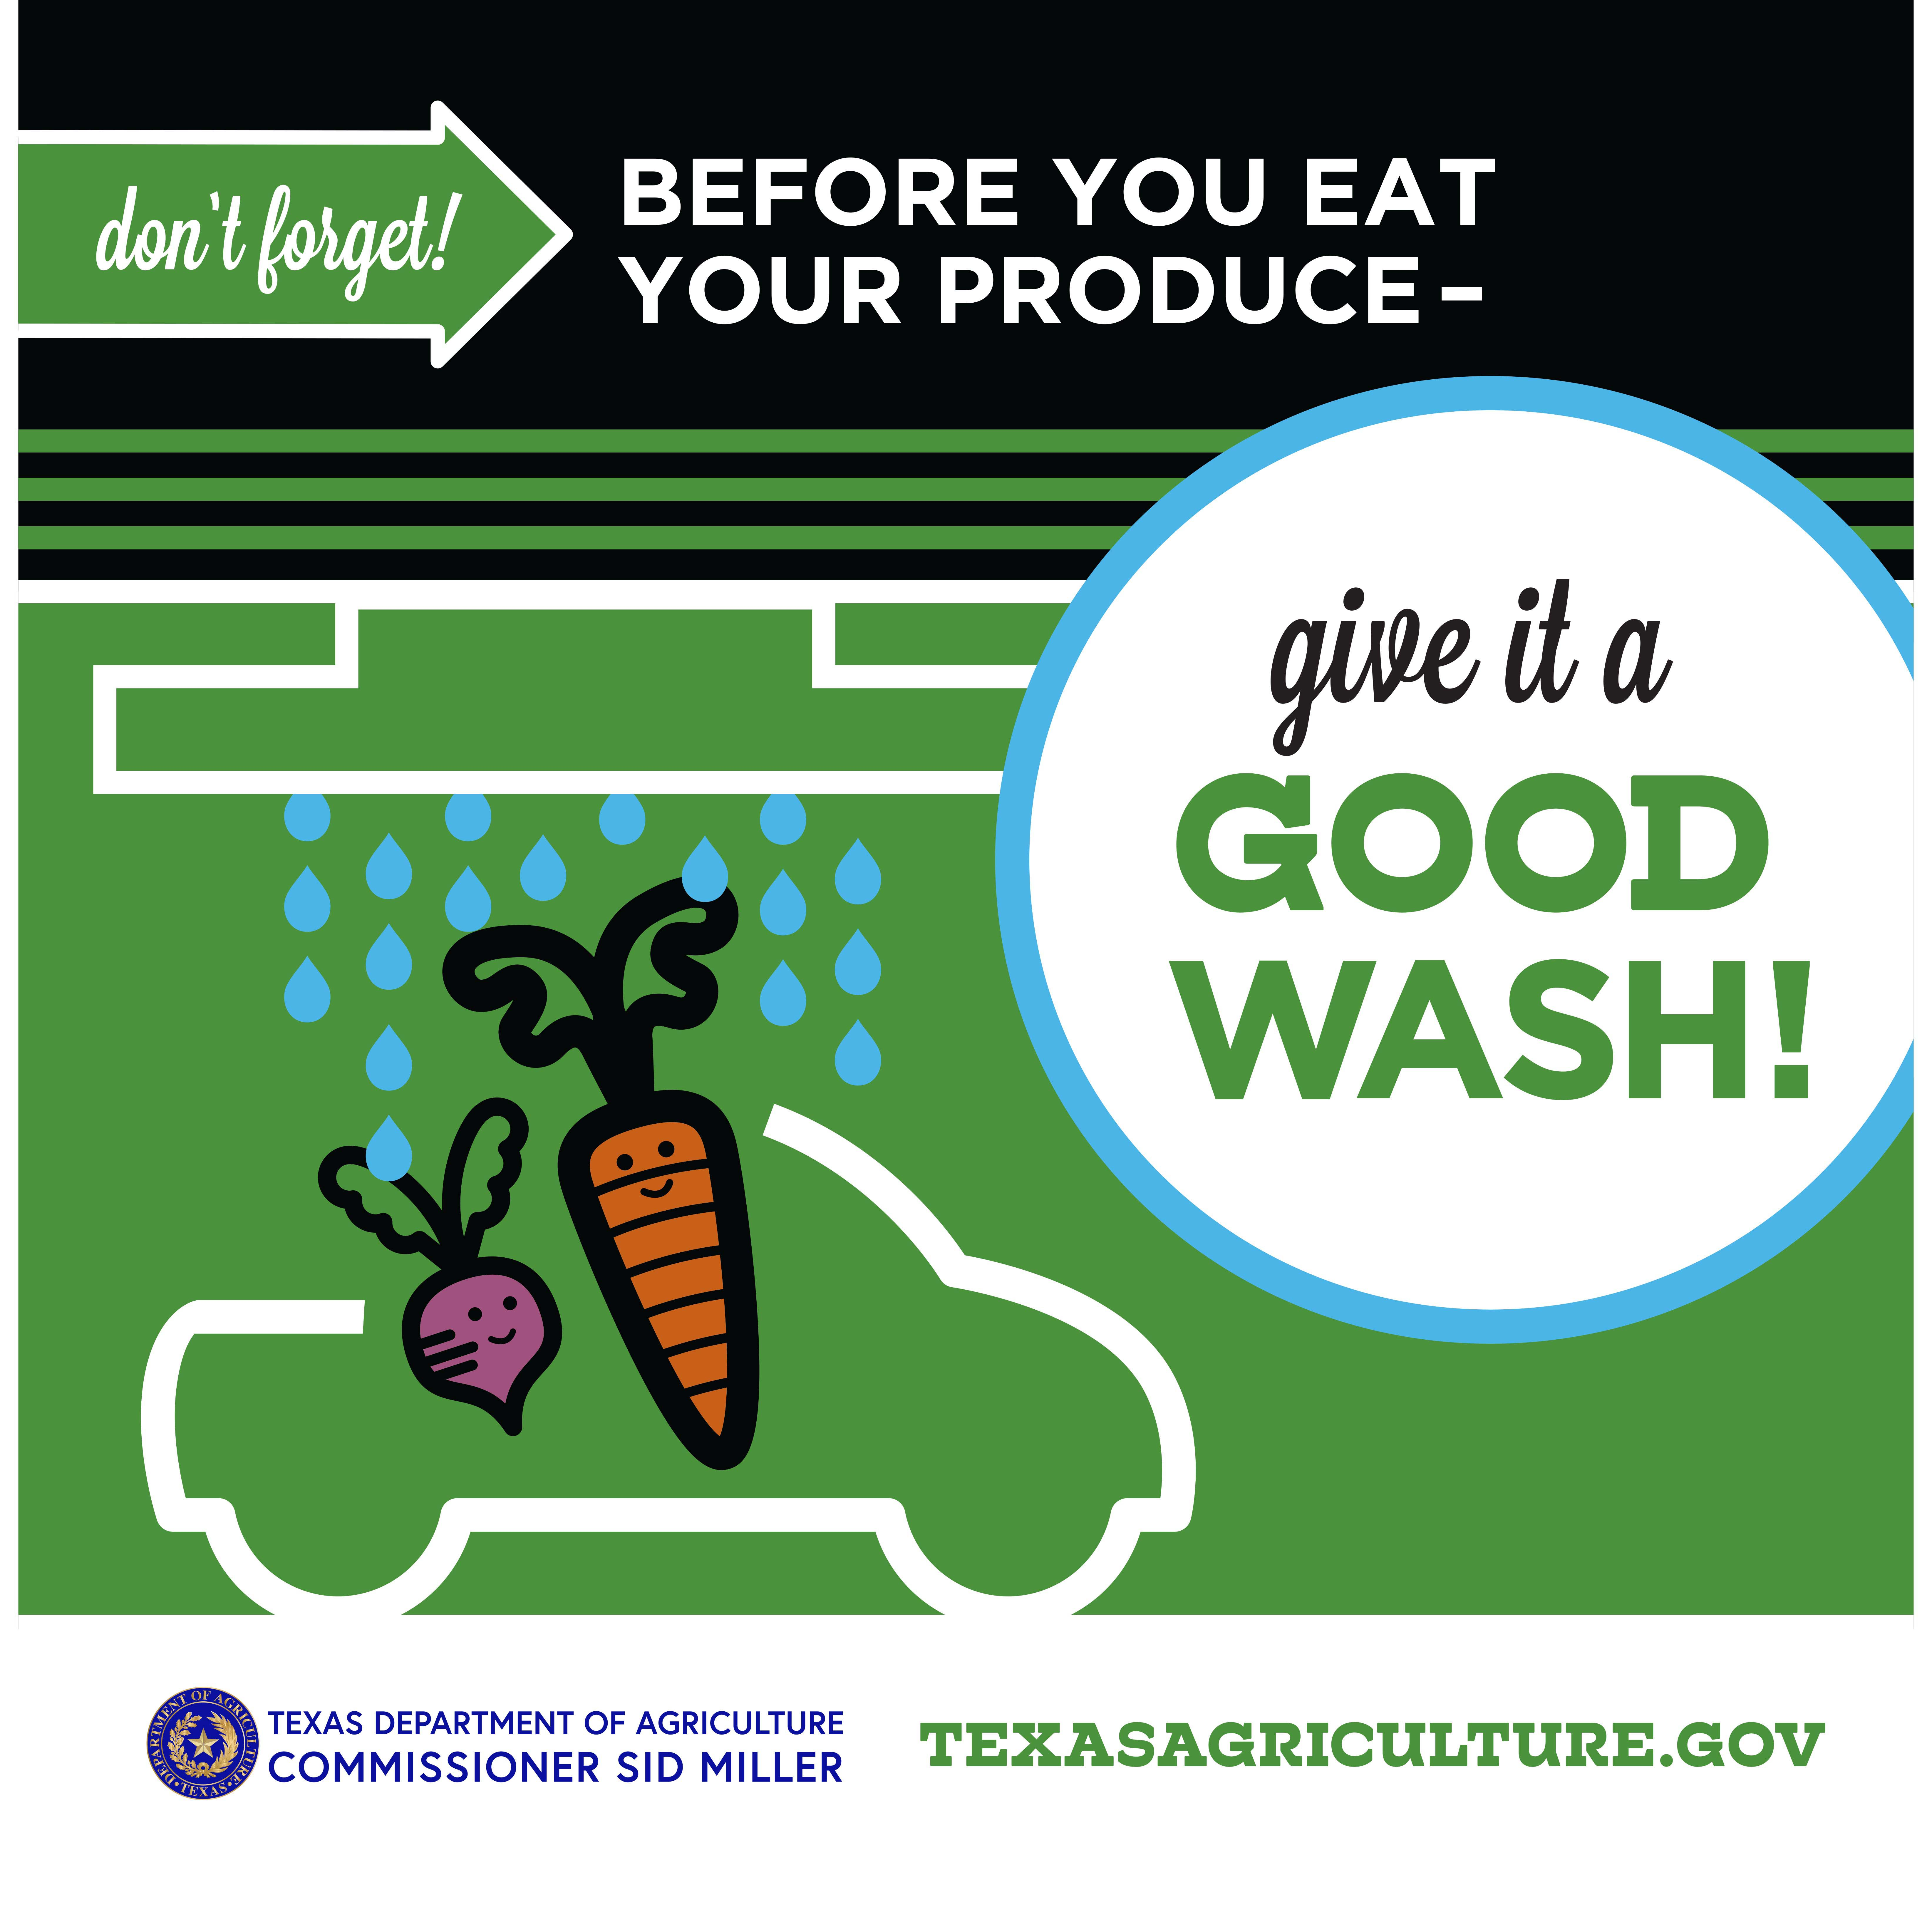 Produce safety information card